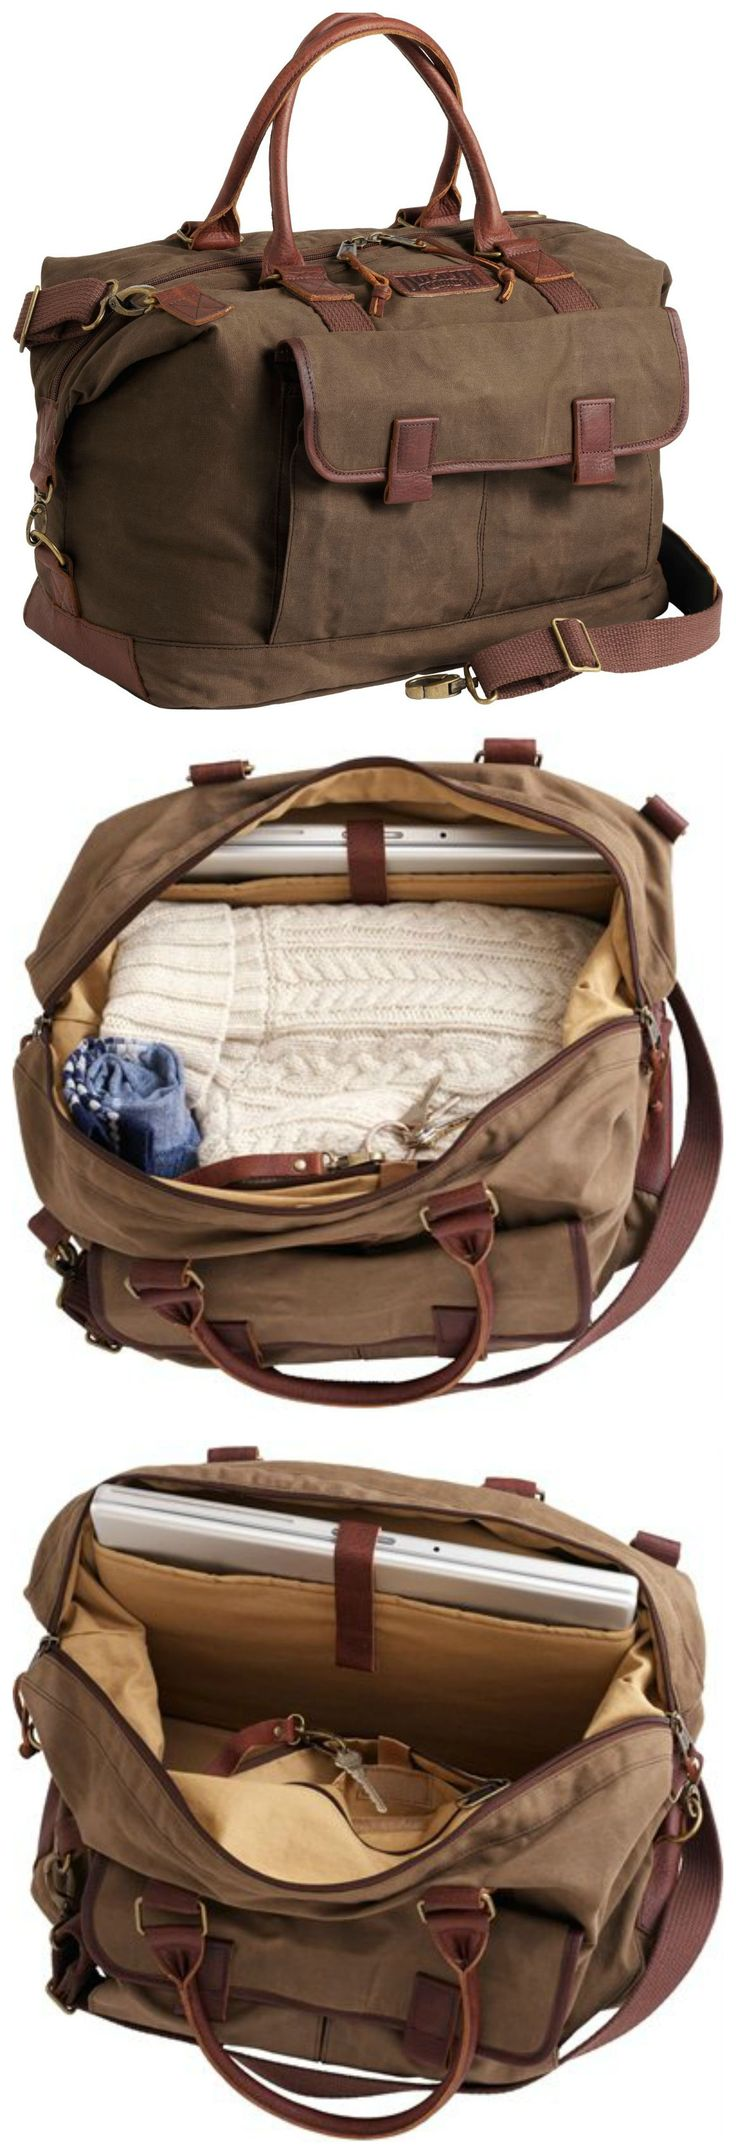 The Oil Cloth Weekender Travel Bag goes the distance with moisture-resisting good looks, ample room for overnight gear and 5 organizing pockets.